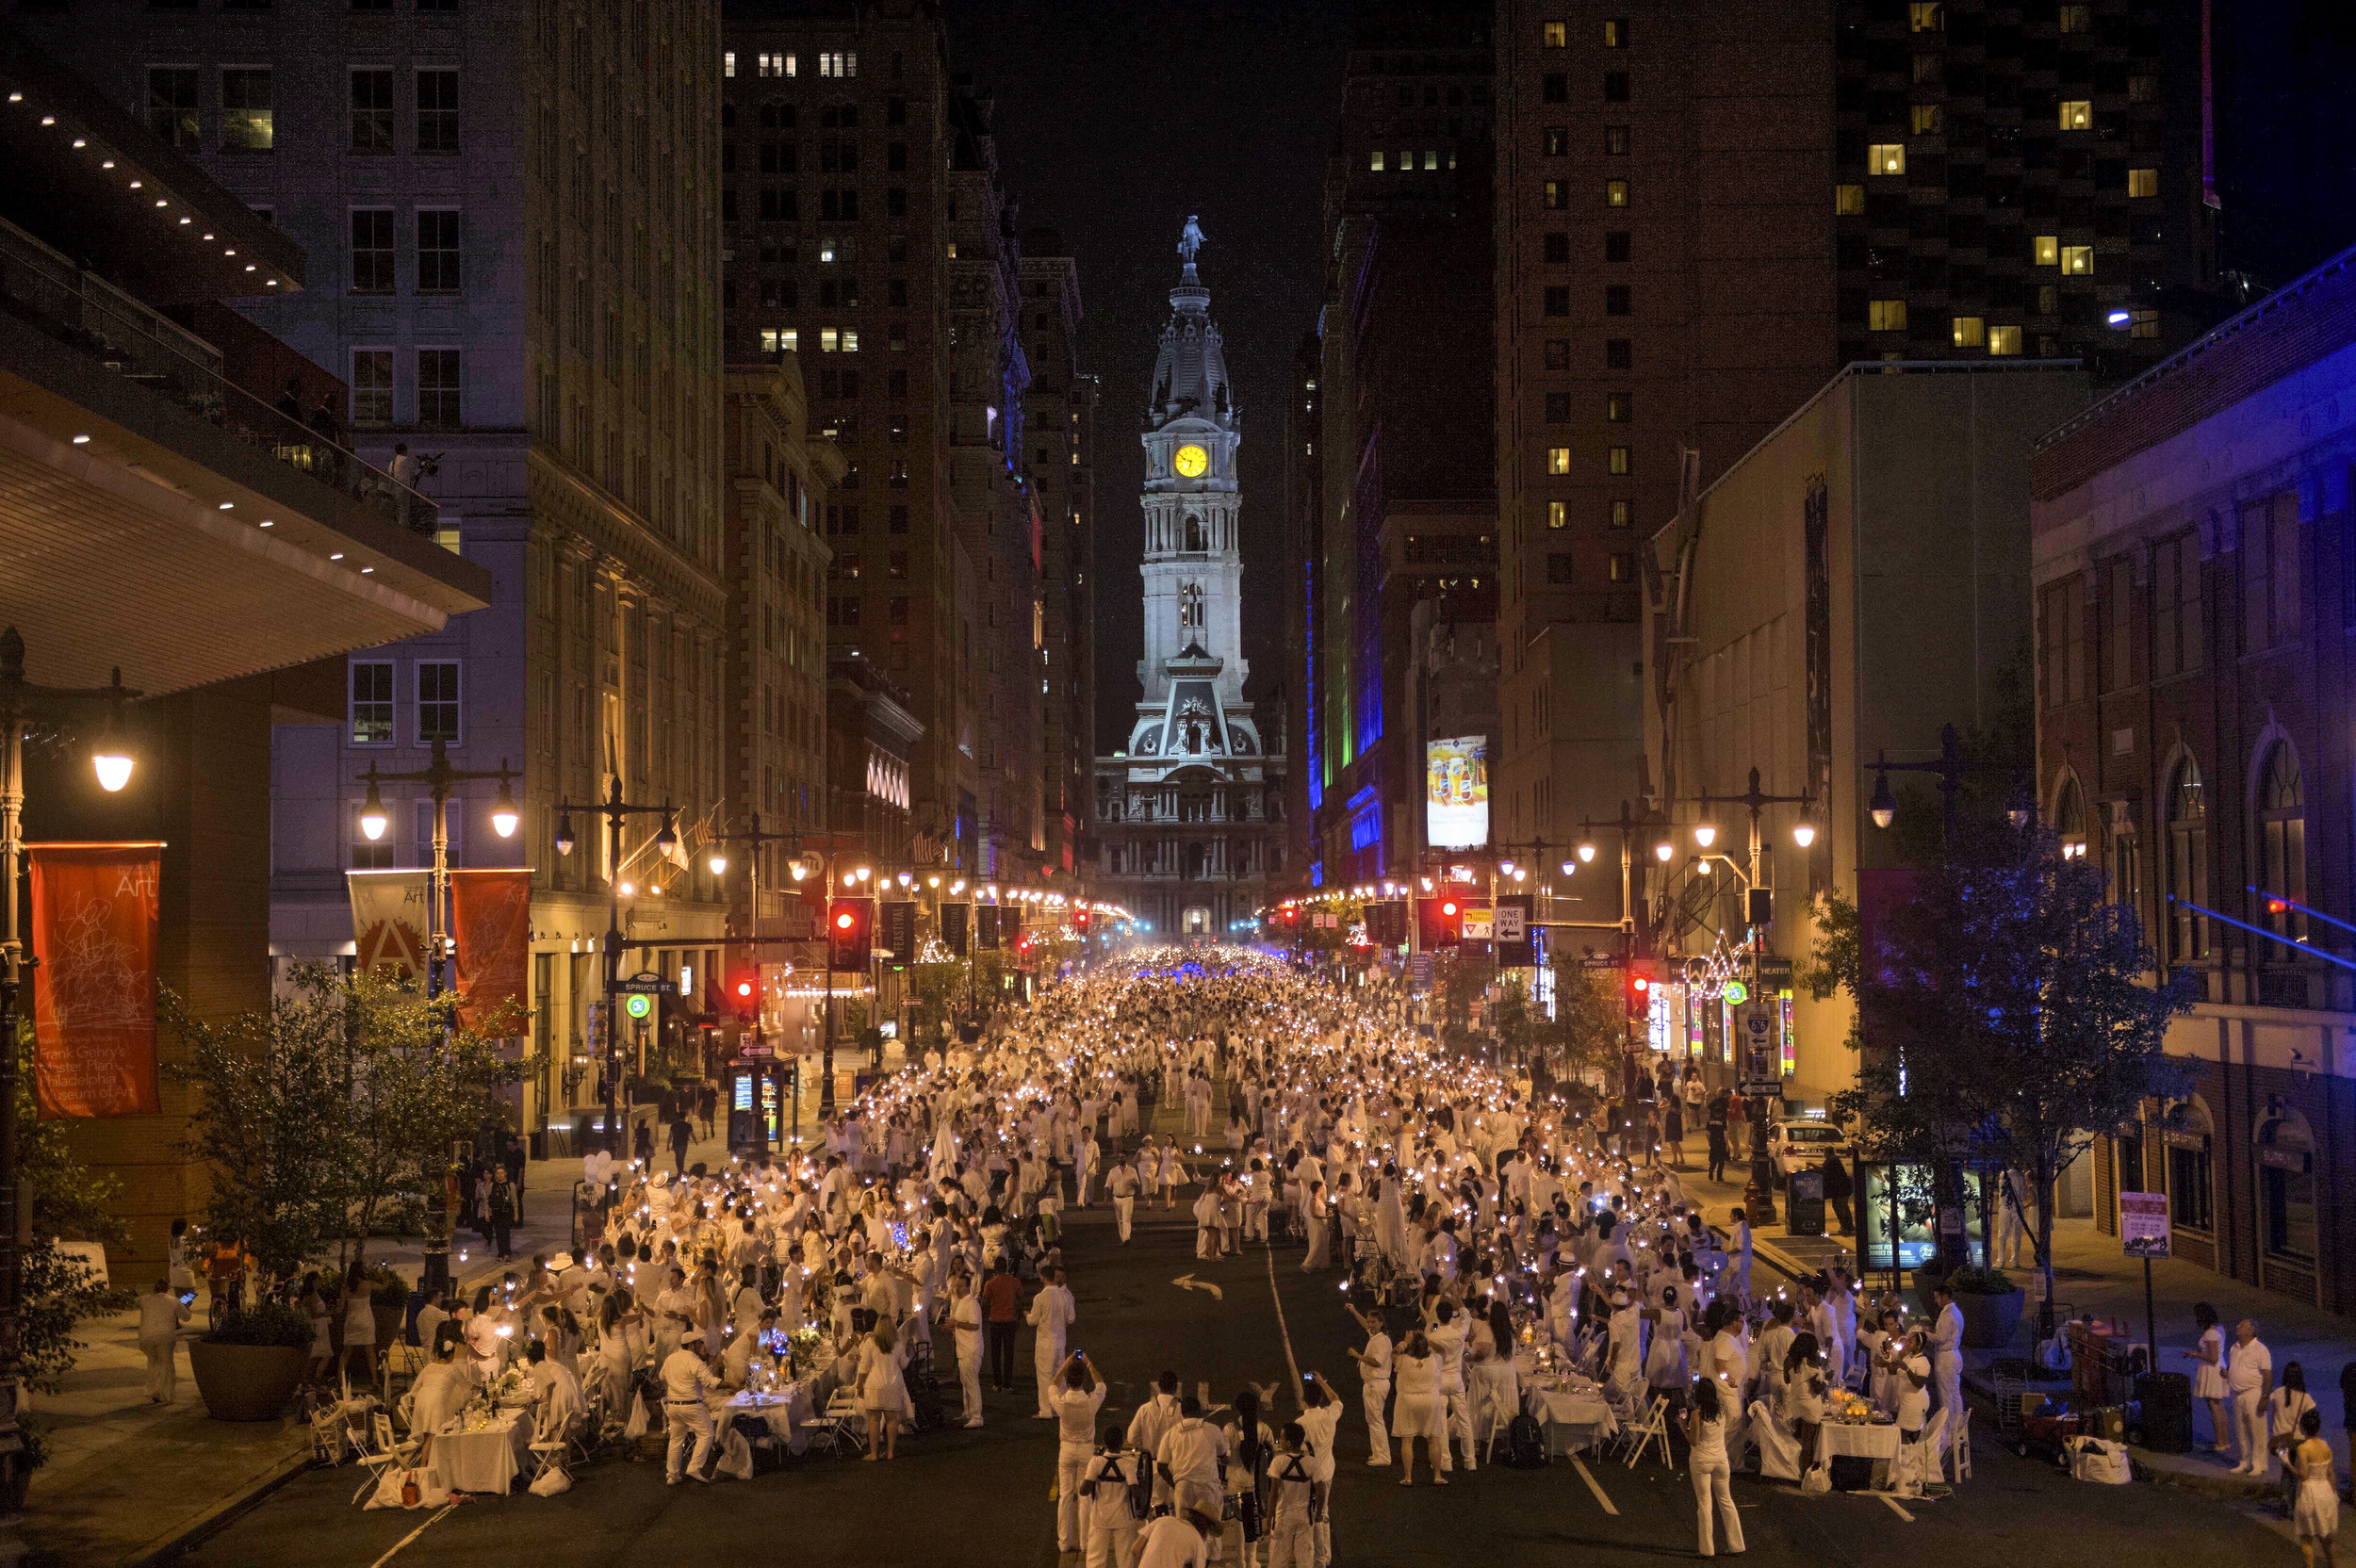 diner en blanc, philadelphia, pop-up party, white, contest, win, sold-out, aversa pr